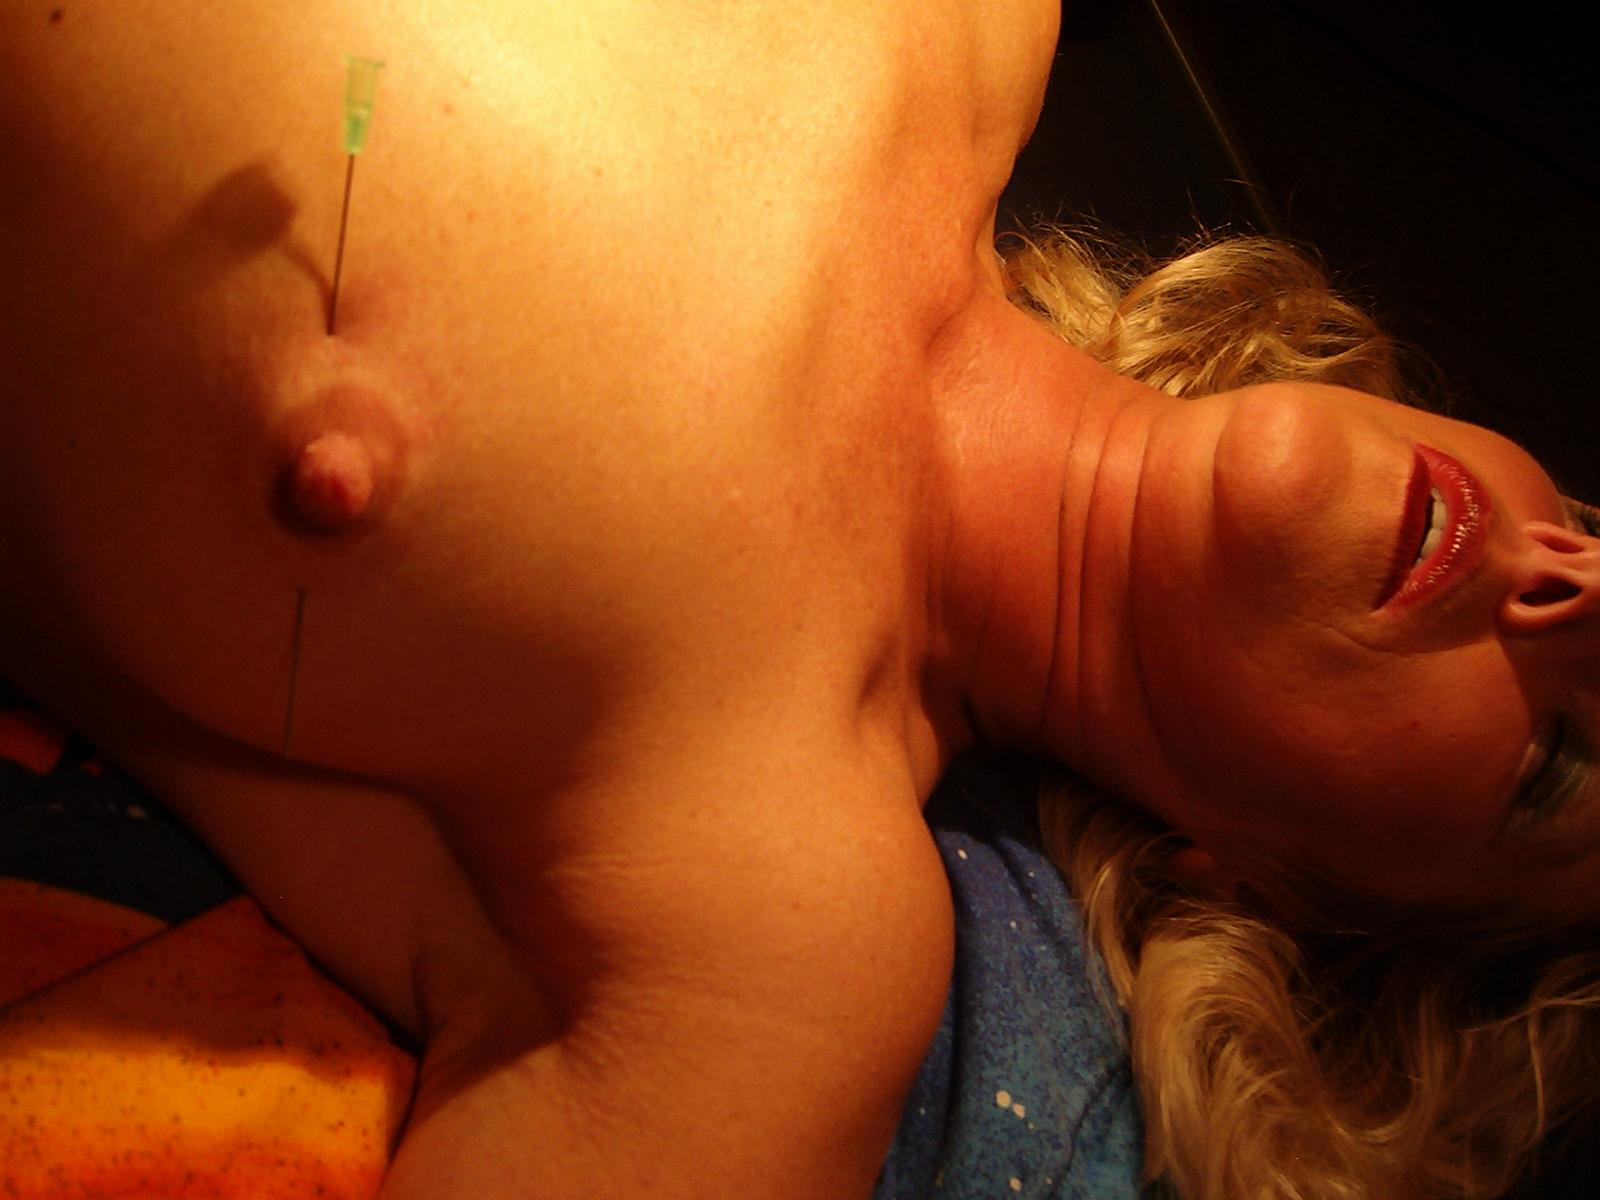 Hot milfs in threesome with big tits